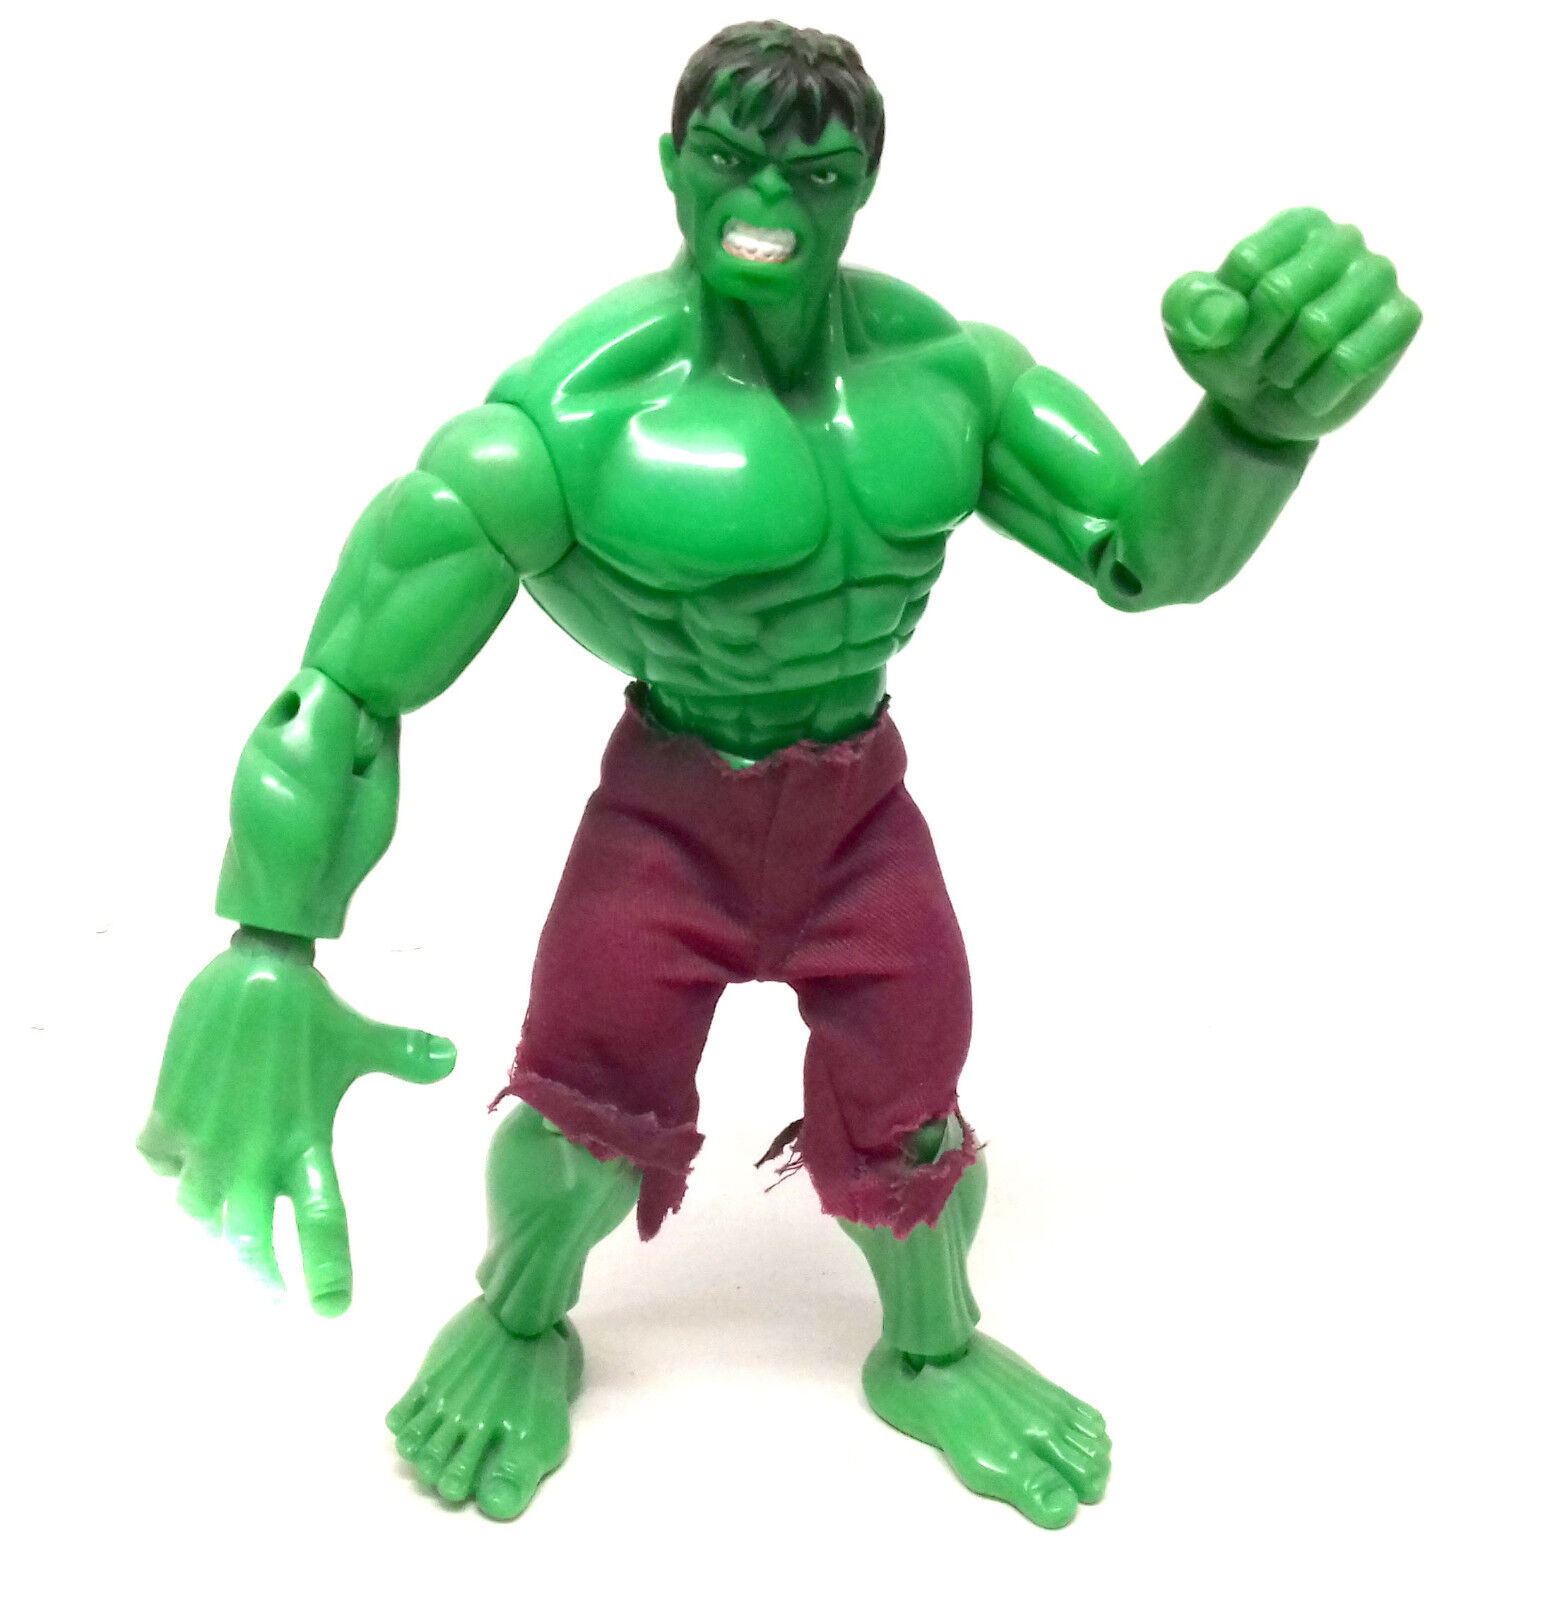 Vintage 90's MARVEL FAMOUS COVERS  9  HULK figure in great condition RARE ITEM